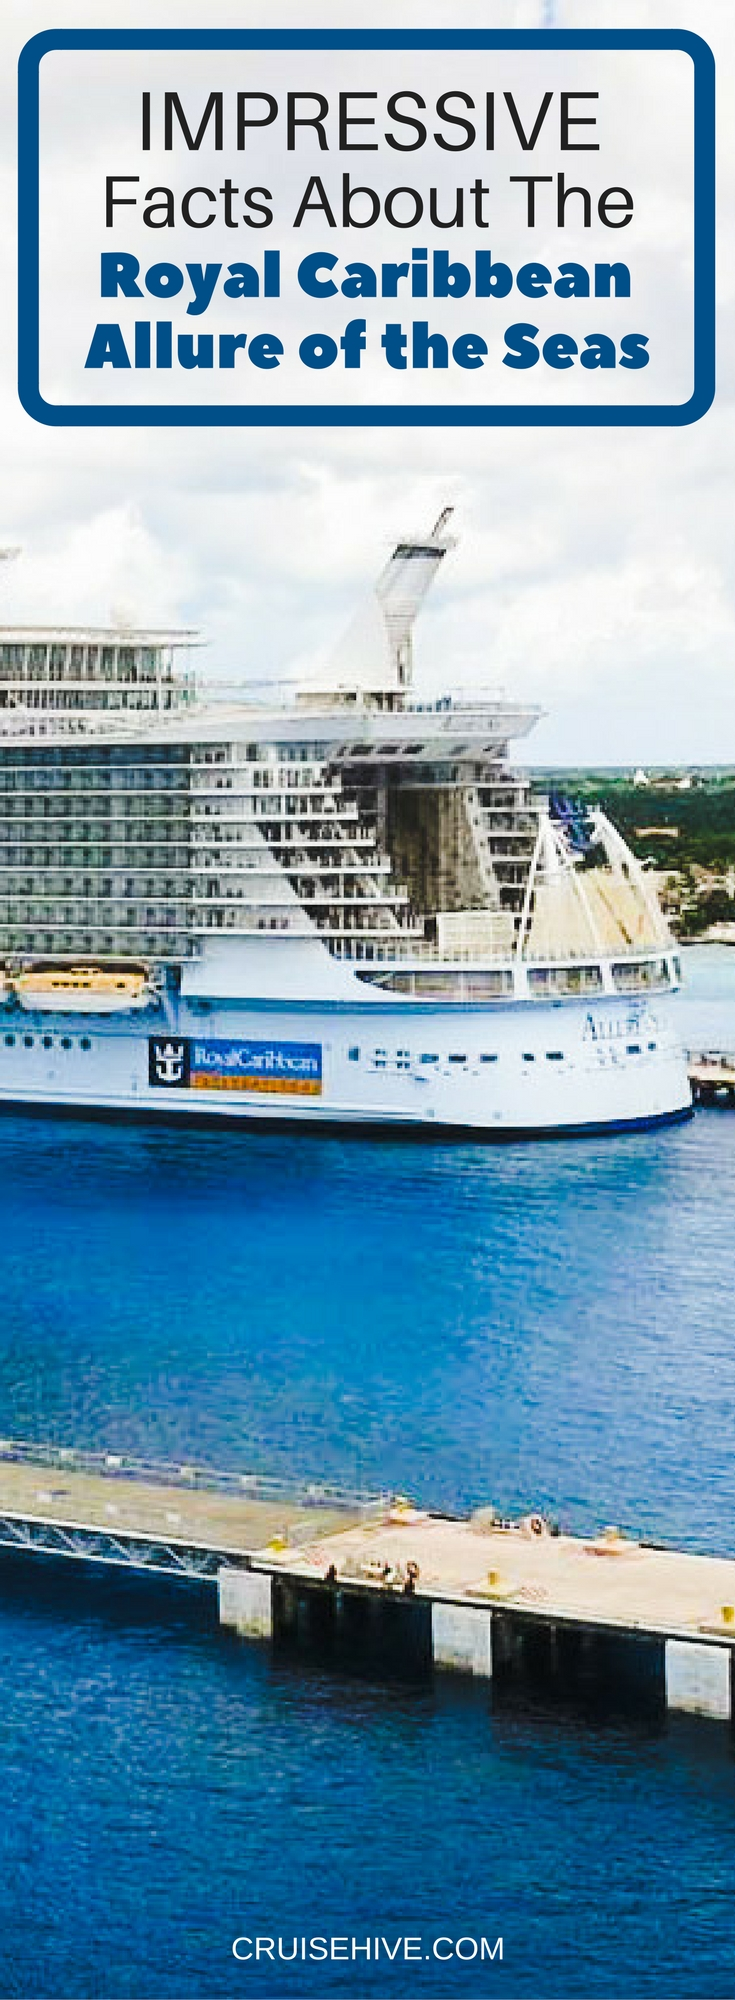 Impressive Facts About the Royal Caribbean Allure of the Seas